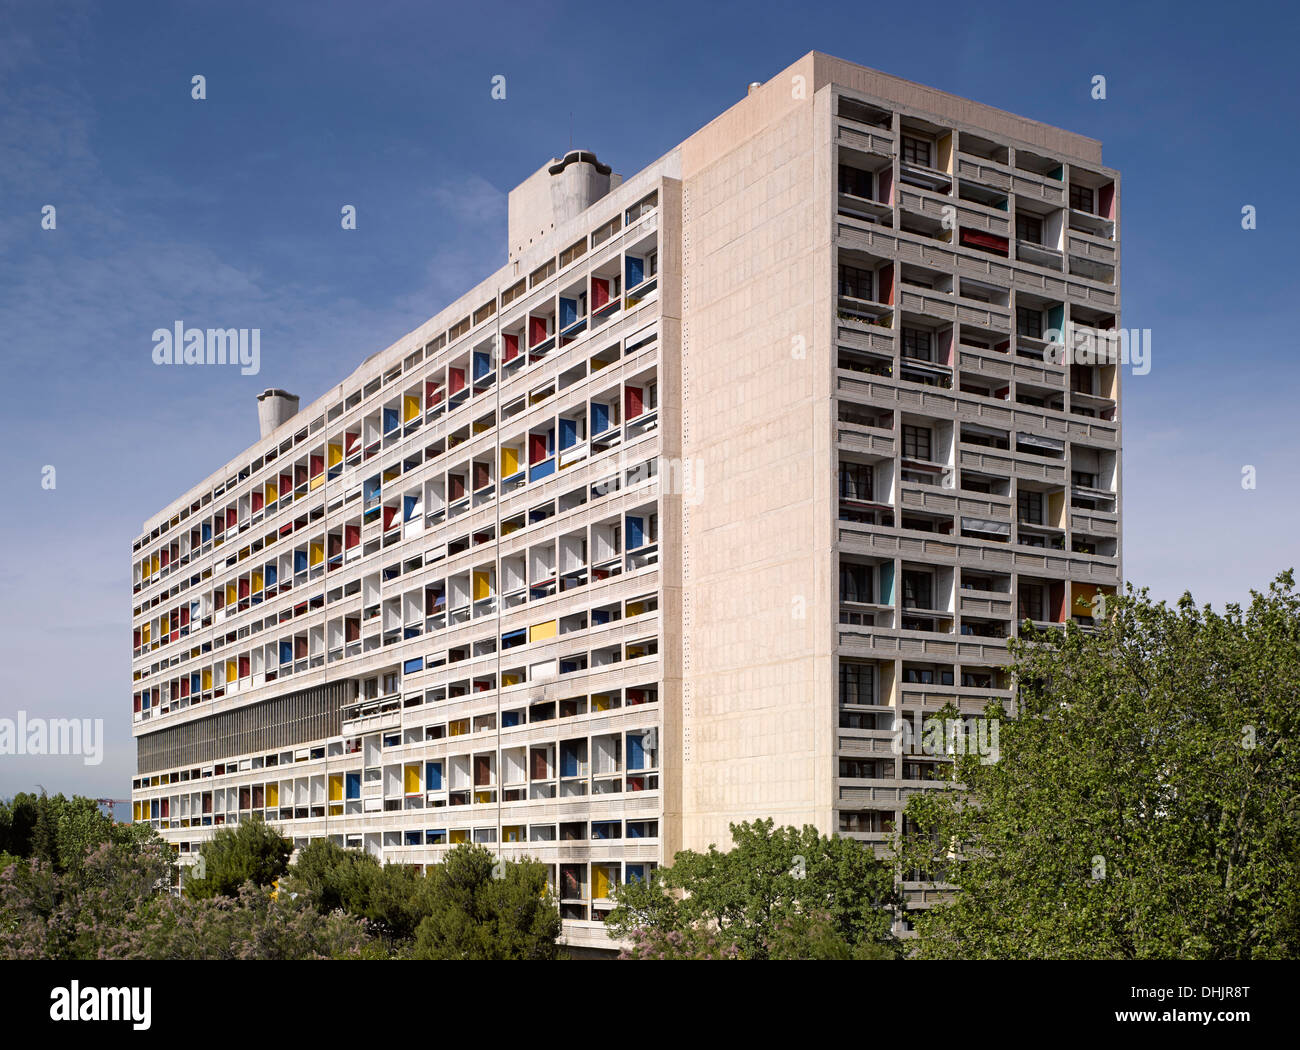 unite d 39 habitation marseille france architect le corbusier 1952 stock photo 62493672 alamy. Black Bedroom Furniture Sets. Home Design Ideas